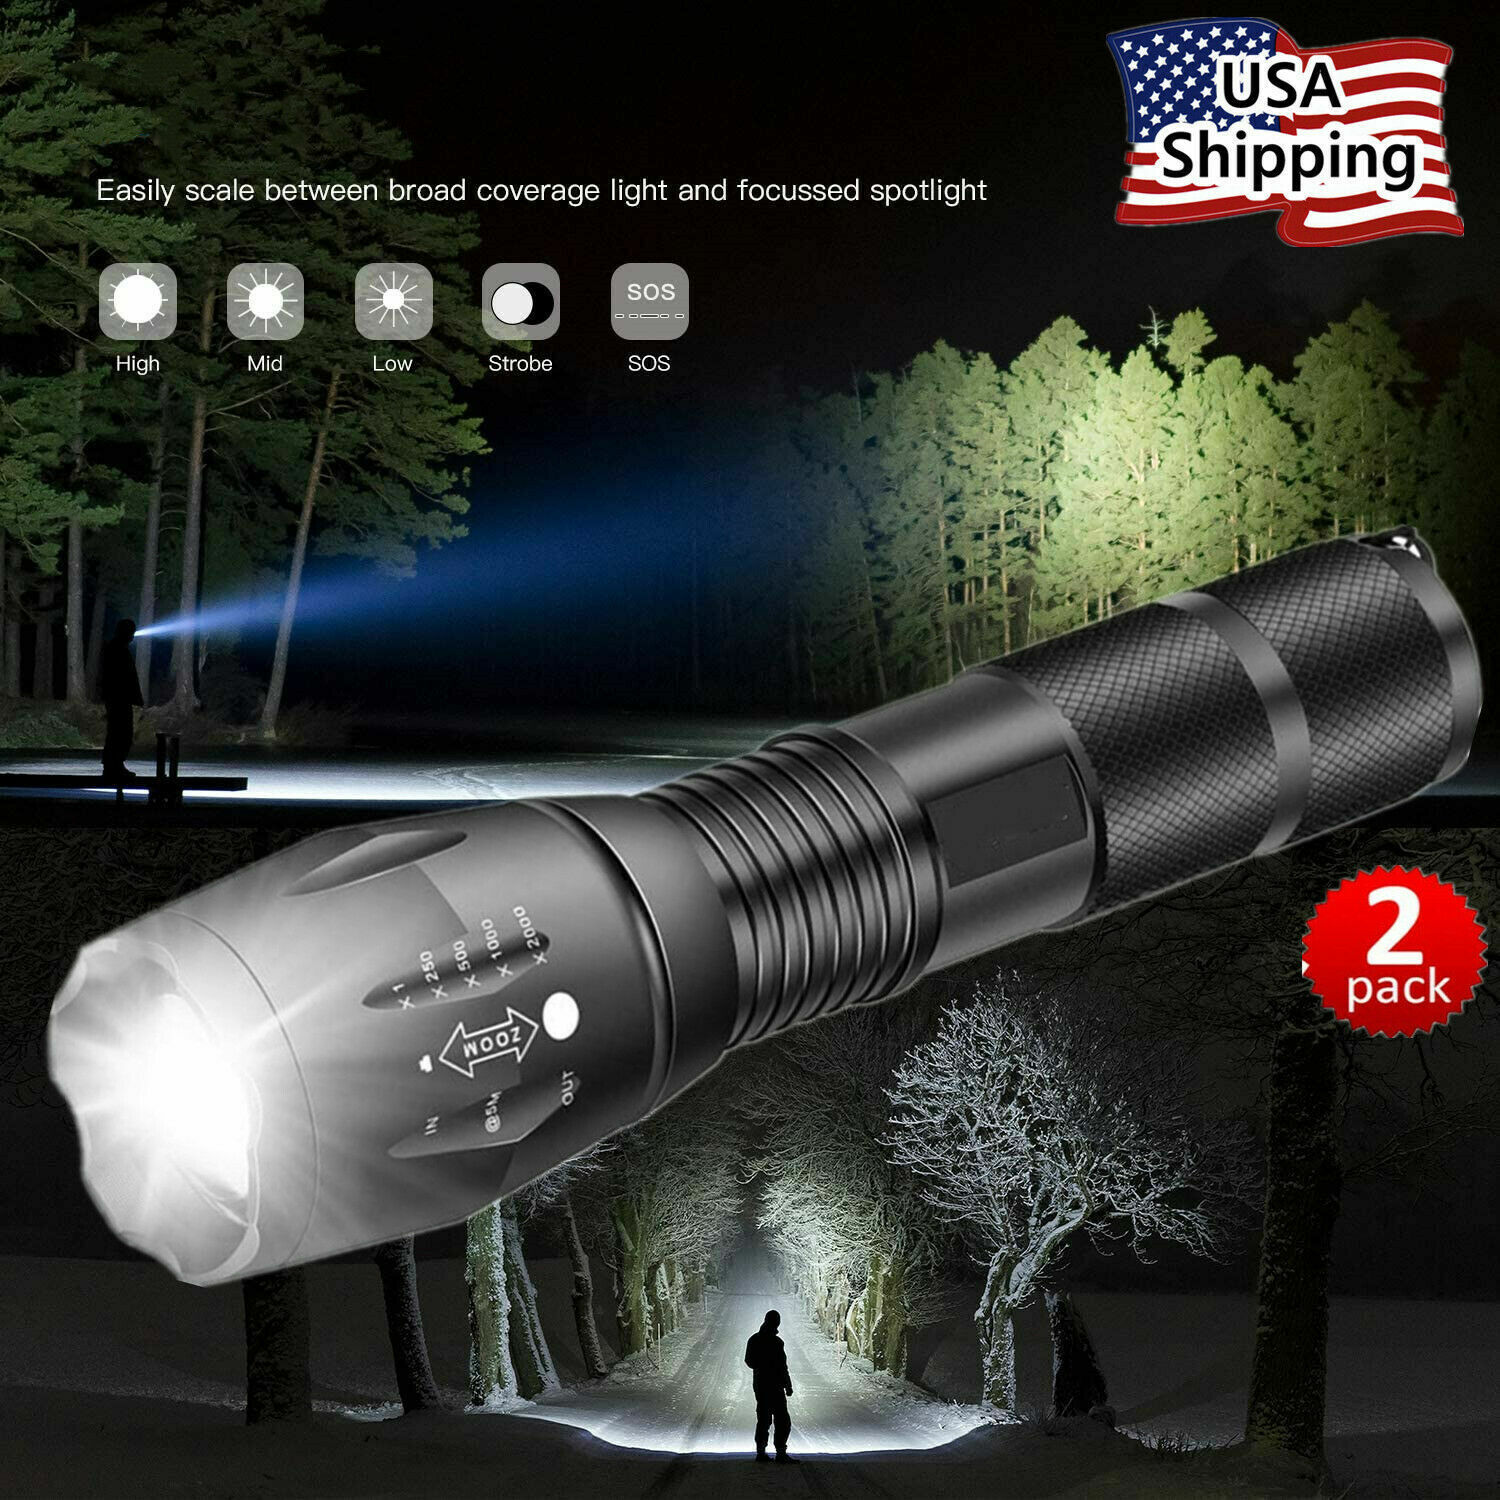 Super-Bright 90000LM XML-T6 LED Tactical Flashlight 5 Modes Zoomable 2-Pack Camping & Hiking